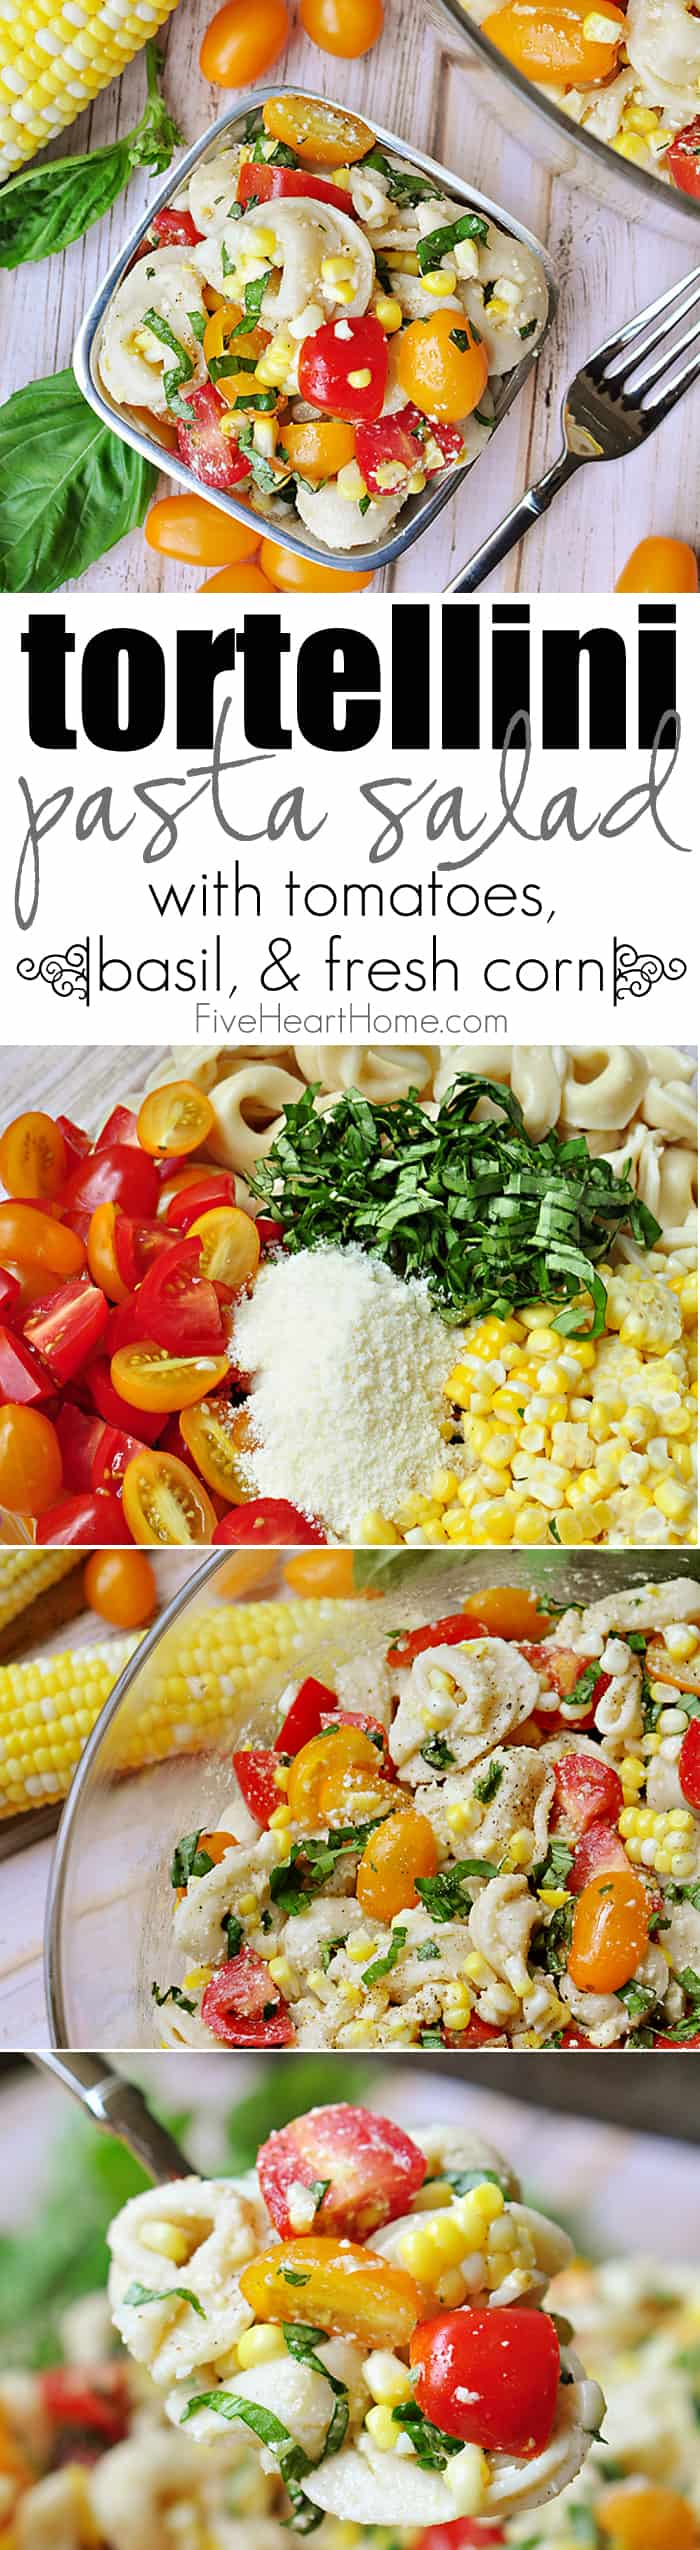 Tortellini Pasta Salad with Tomatoes, Basil, and Fresh Corn Collage with Text Overlay